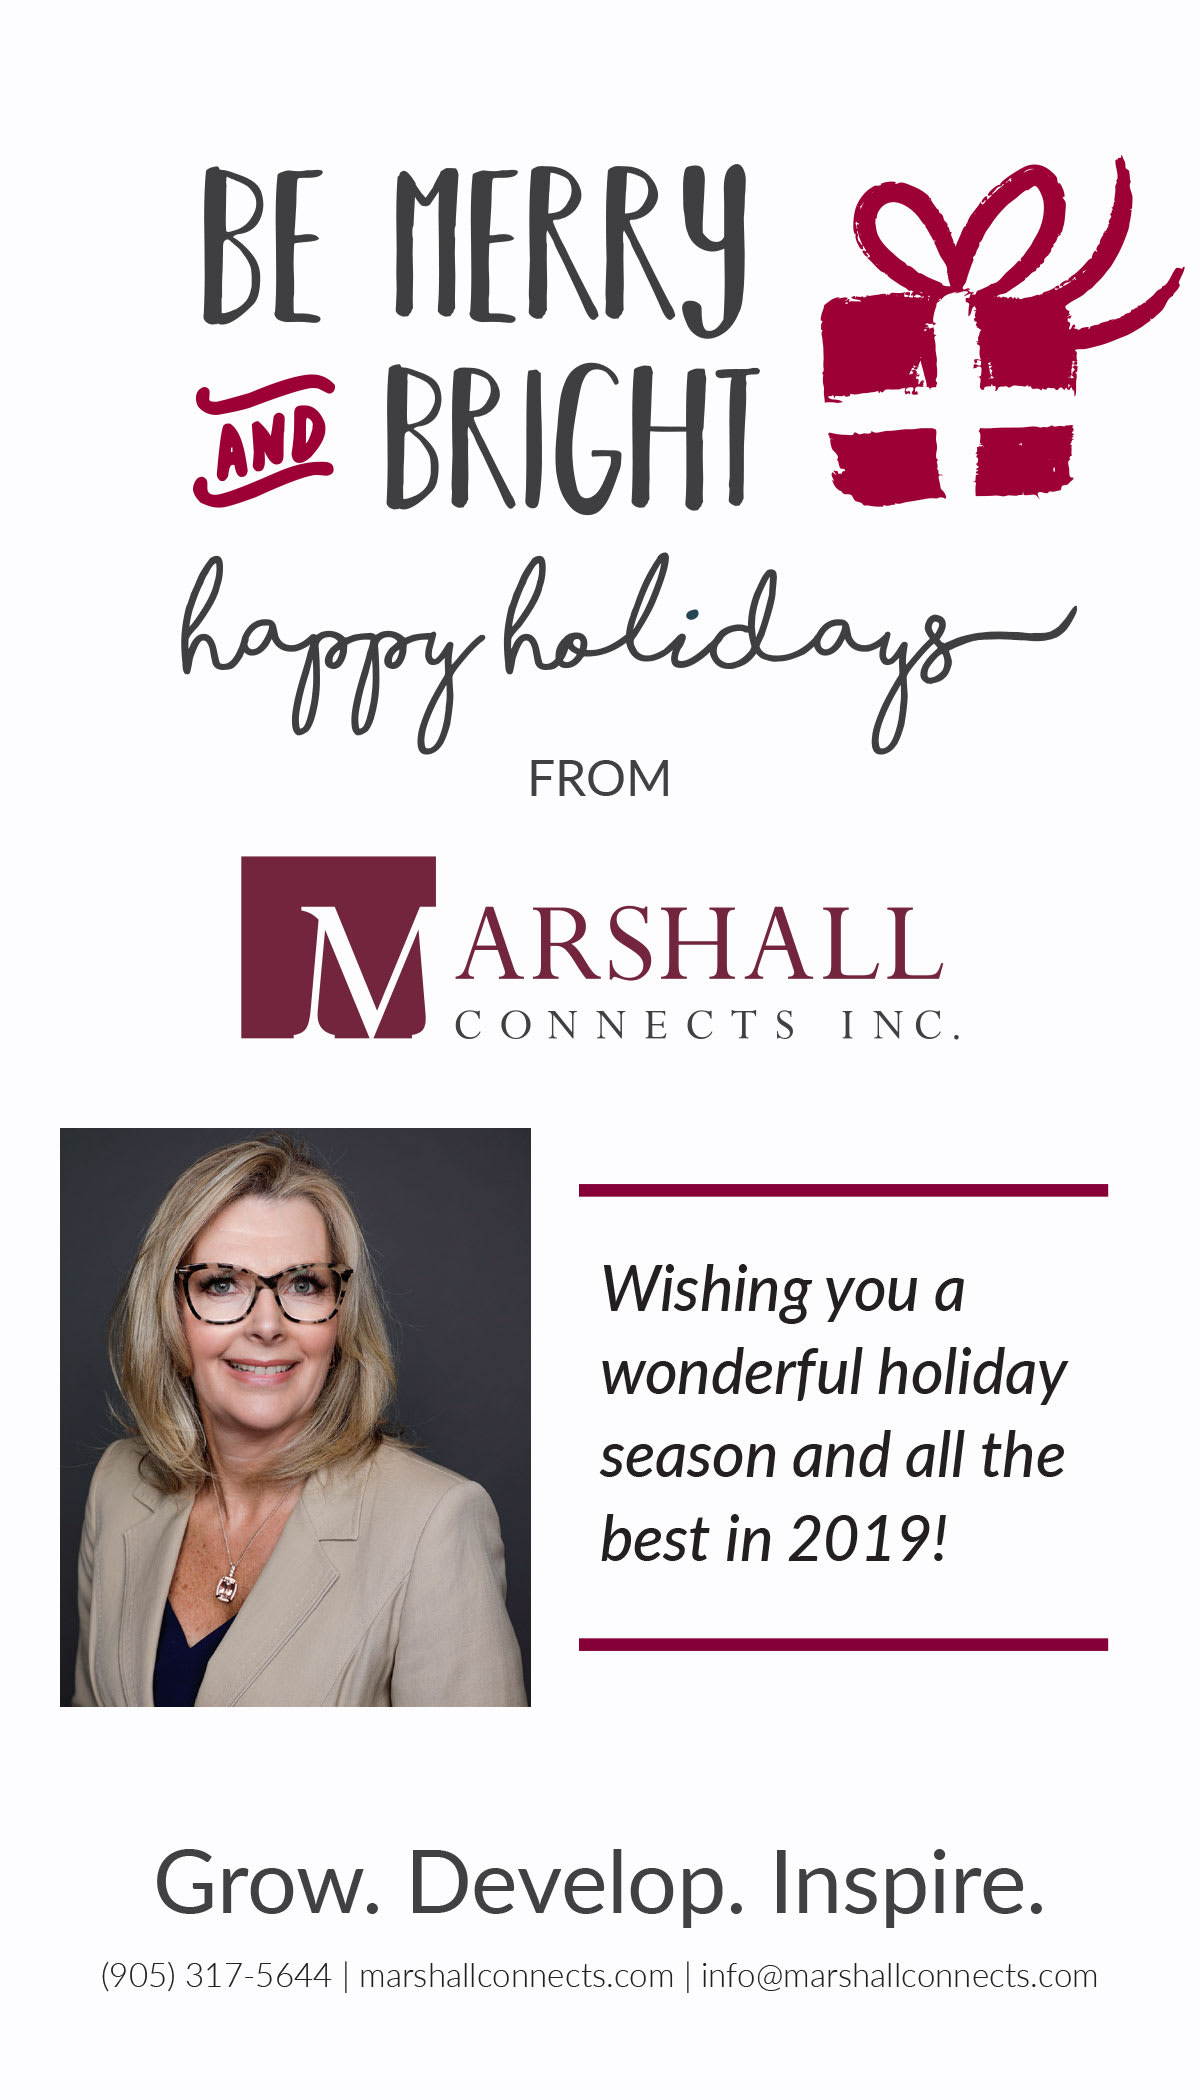 Season's Greetings From Marshall Connects